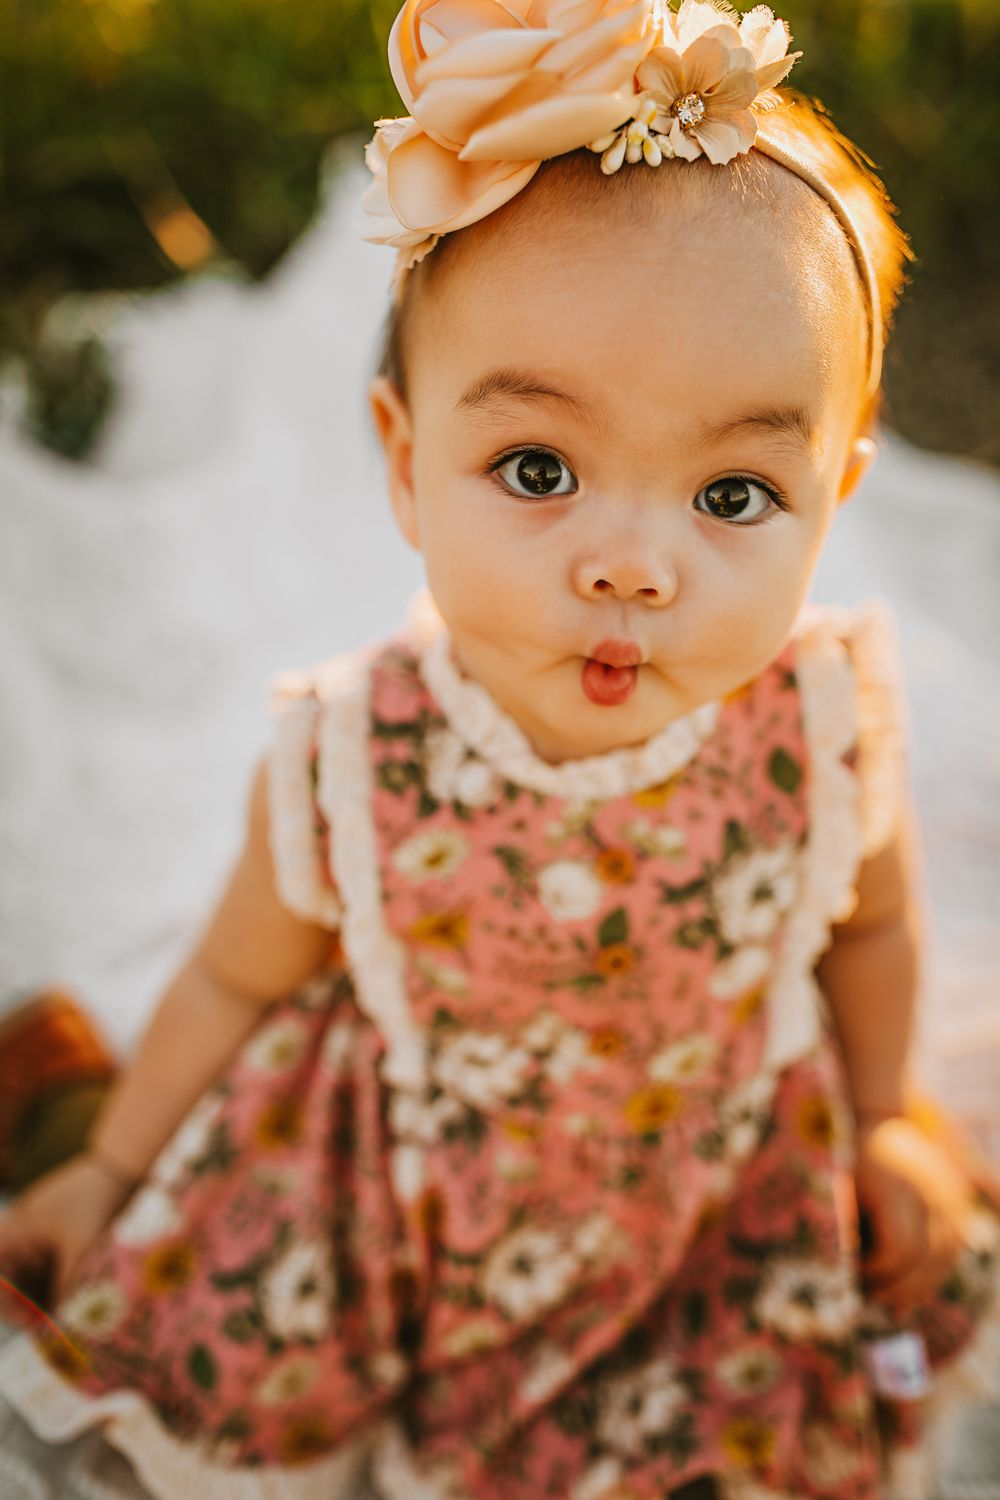 toddler making a fish face in a dress